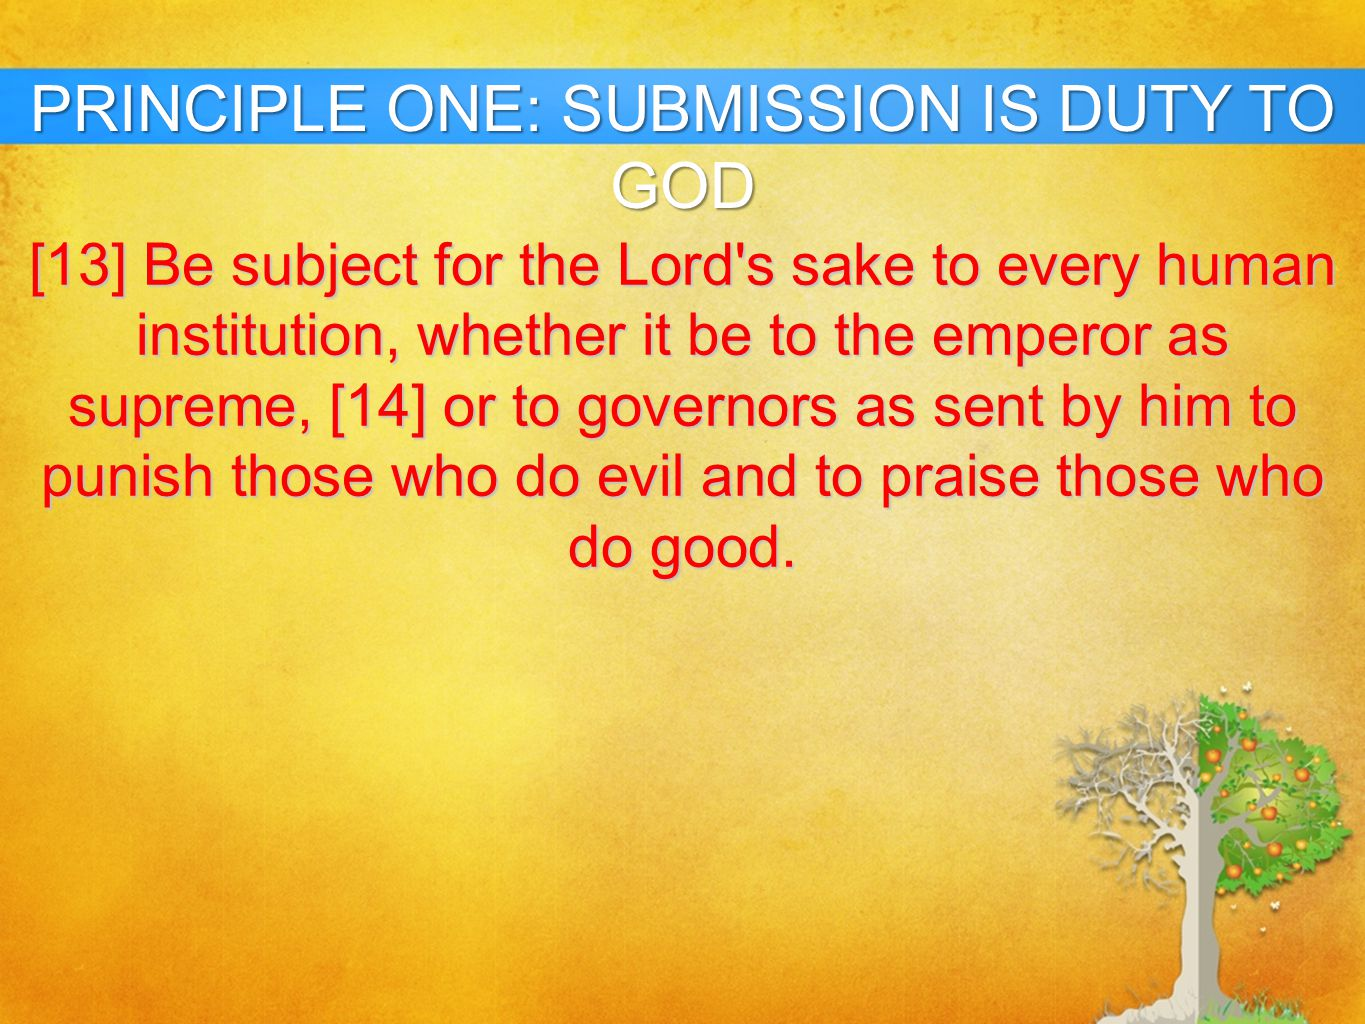 PRINCIPLE ONE: SUBMISSION IS DUTY TO GOD